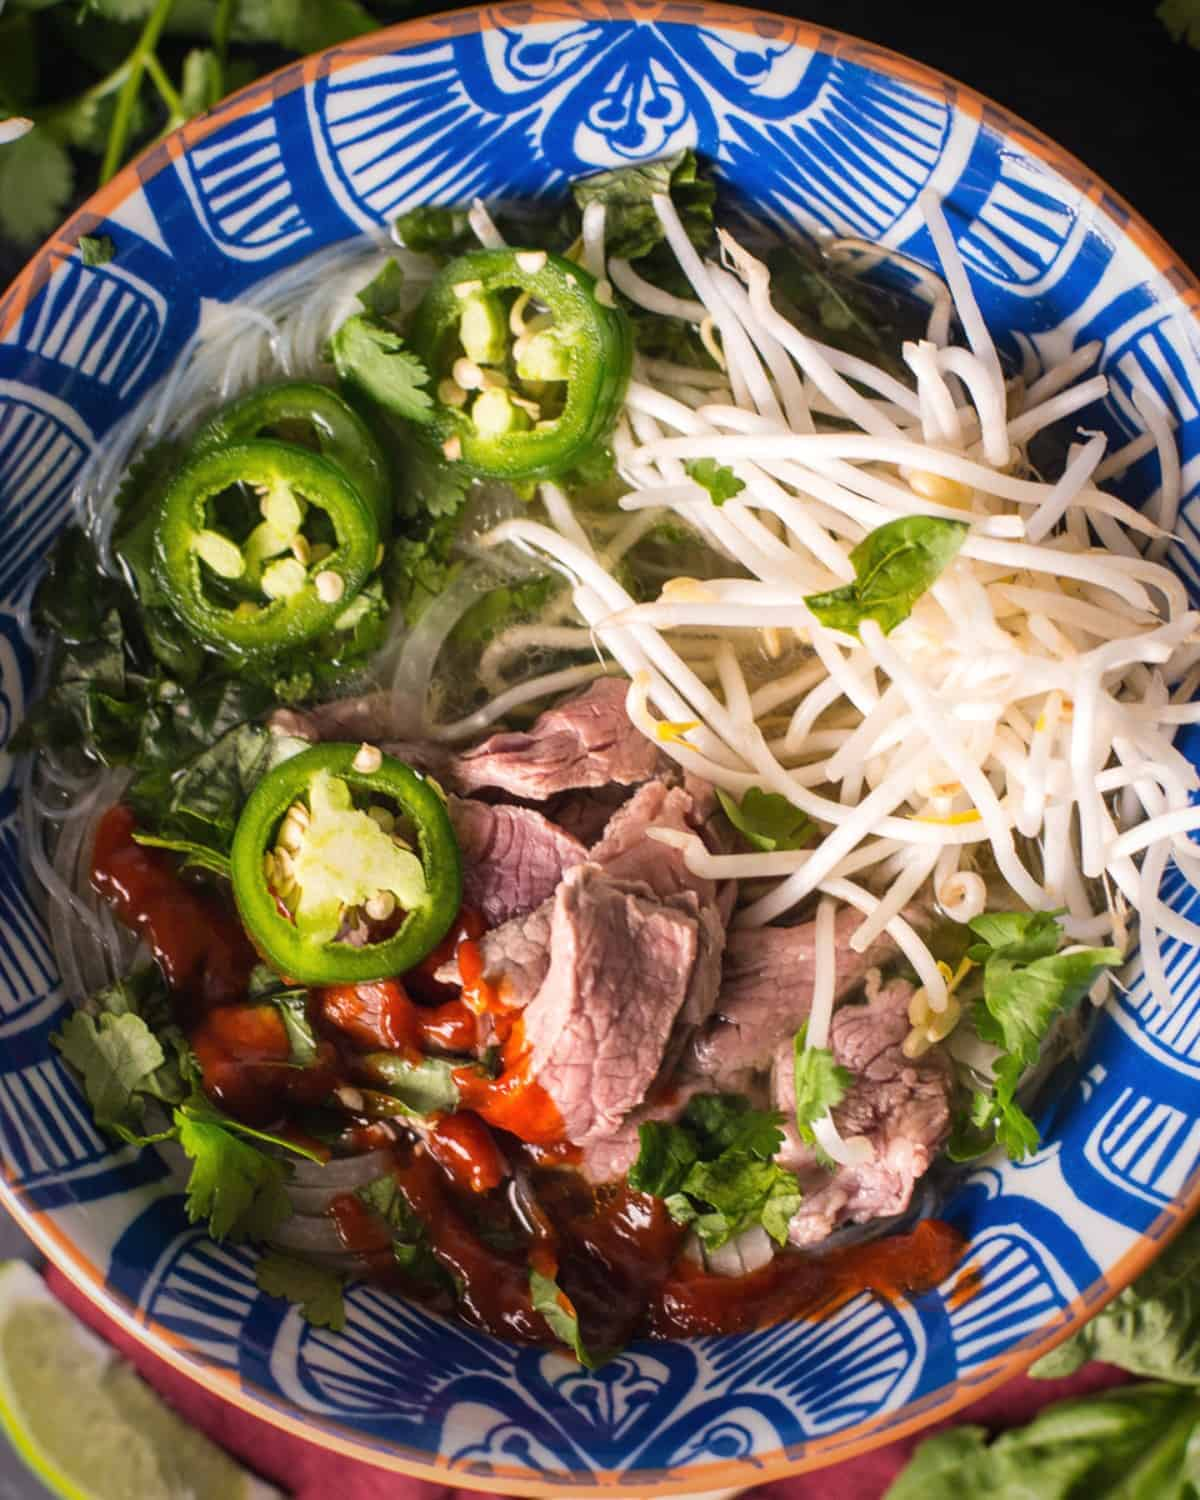 pho tai served in a large bowl with bean sprouts, jalapenos, and plenty of sriracha